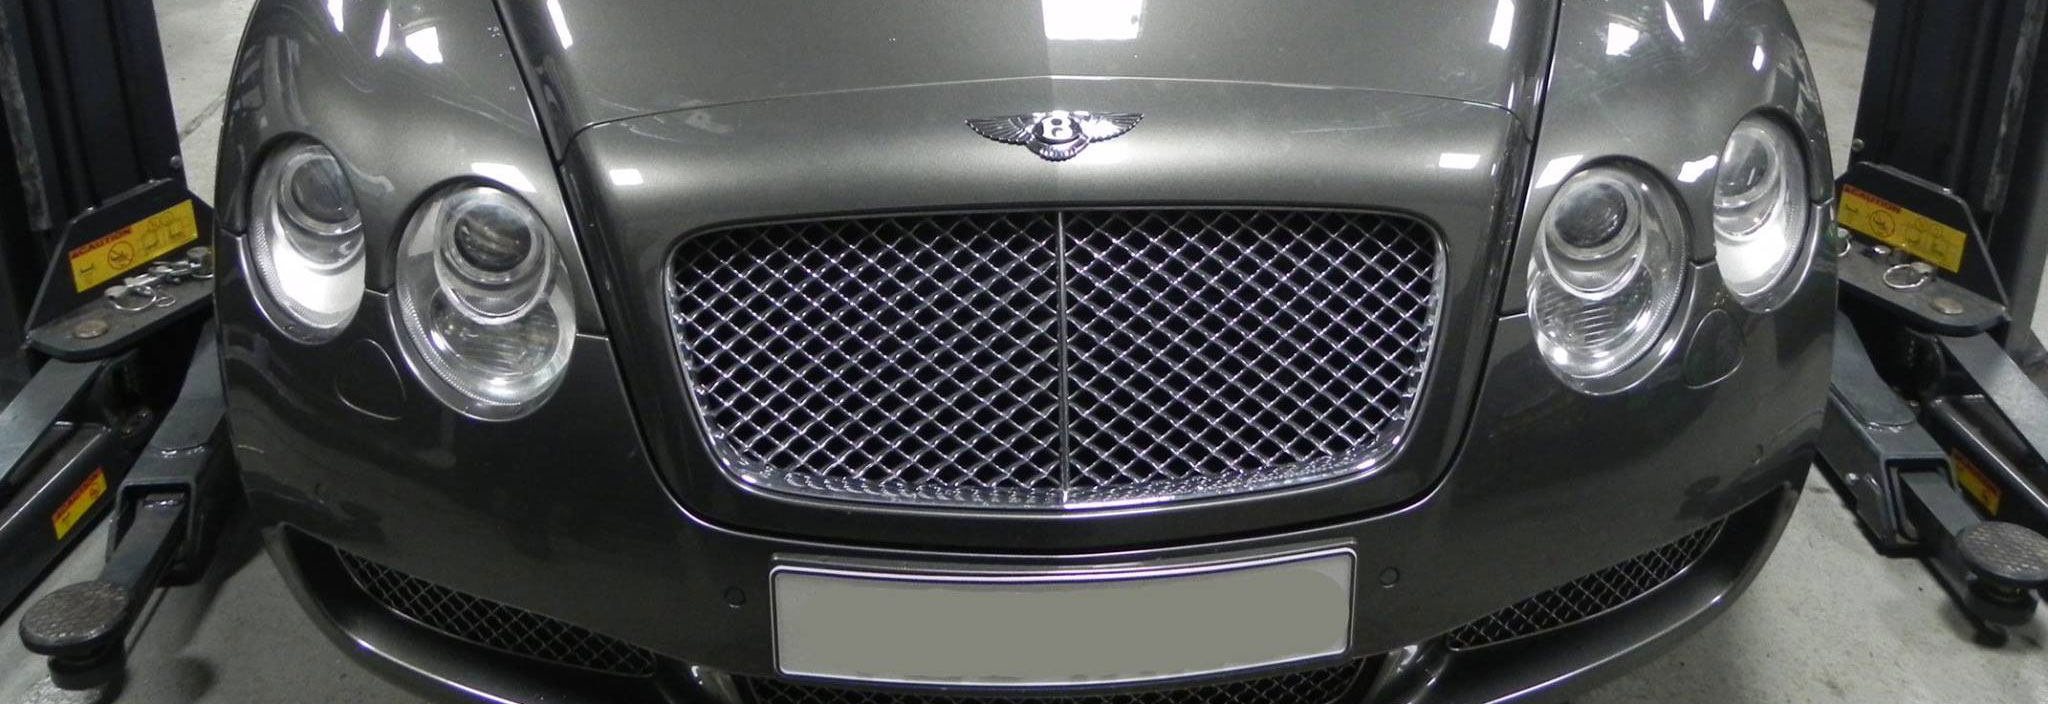 Vacancies Bentley Servicing In Norwich Norfolk - Independent bentley servicing